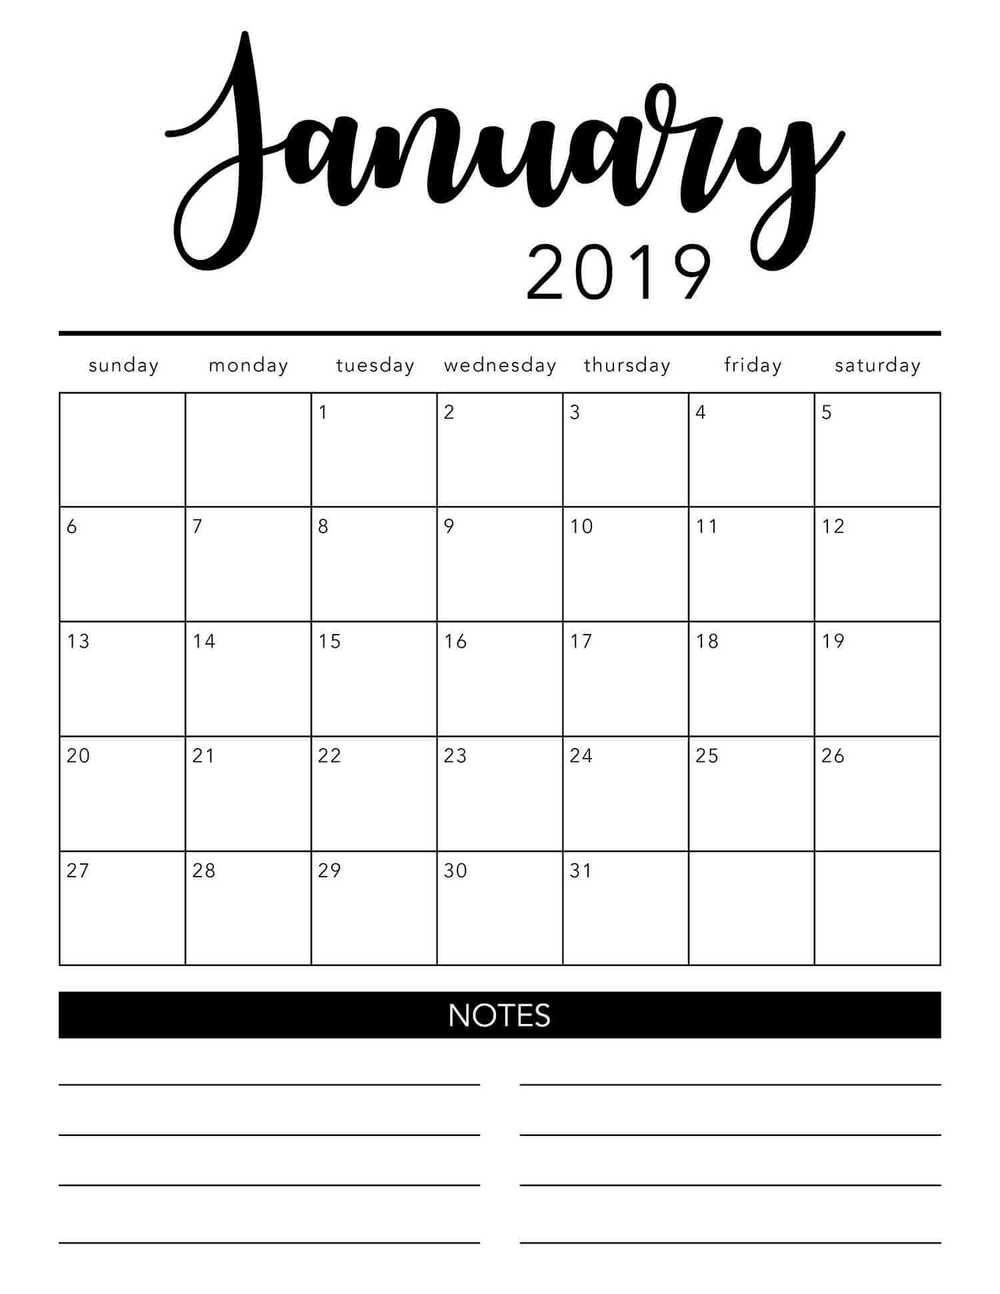 Free 2019 Printable Calendar Template (2 Colors!) - I Heart Naptime within Printable Calendar By Month Blank